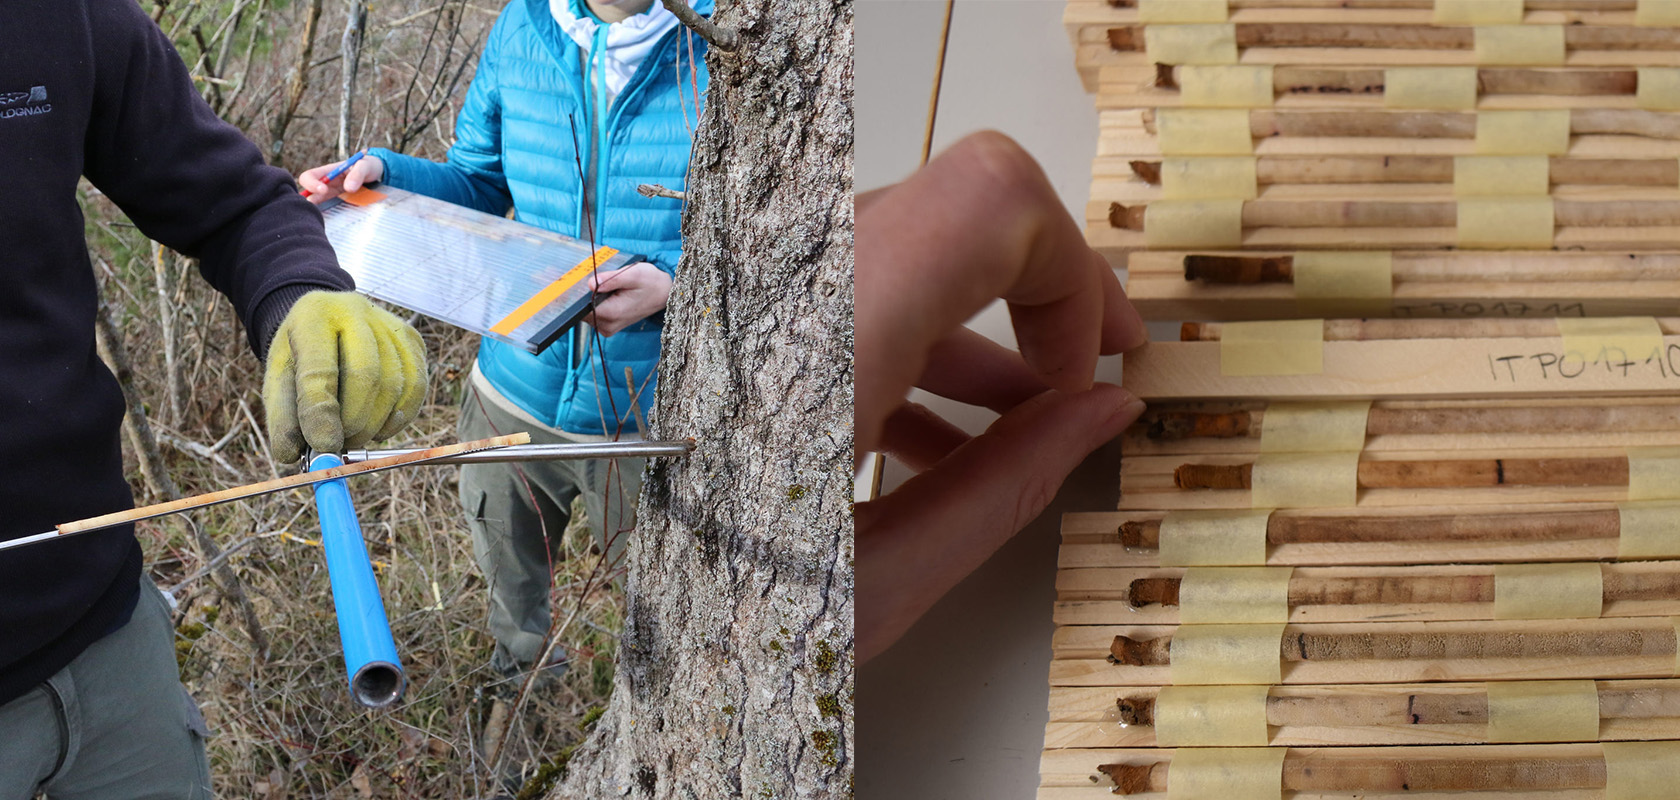 Wood cores taken from species including black poplar, taken from 120 sites around Europe, are helping researchers build up a library of genetic information. Image credits (L-R) - Marc Villar/INRA, France & L.Mateju/WSL, licensed under There is concern that climate change is happening too fast for forests to adapt, so scientists are giving them a helping hand. Image credit - Mehdi Pringarbe/INRA Avignon, licensed under CC BY-NC-SA 2.0